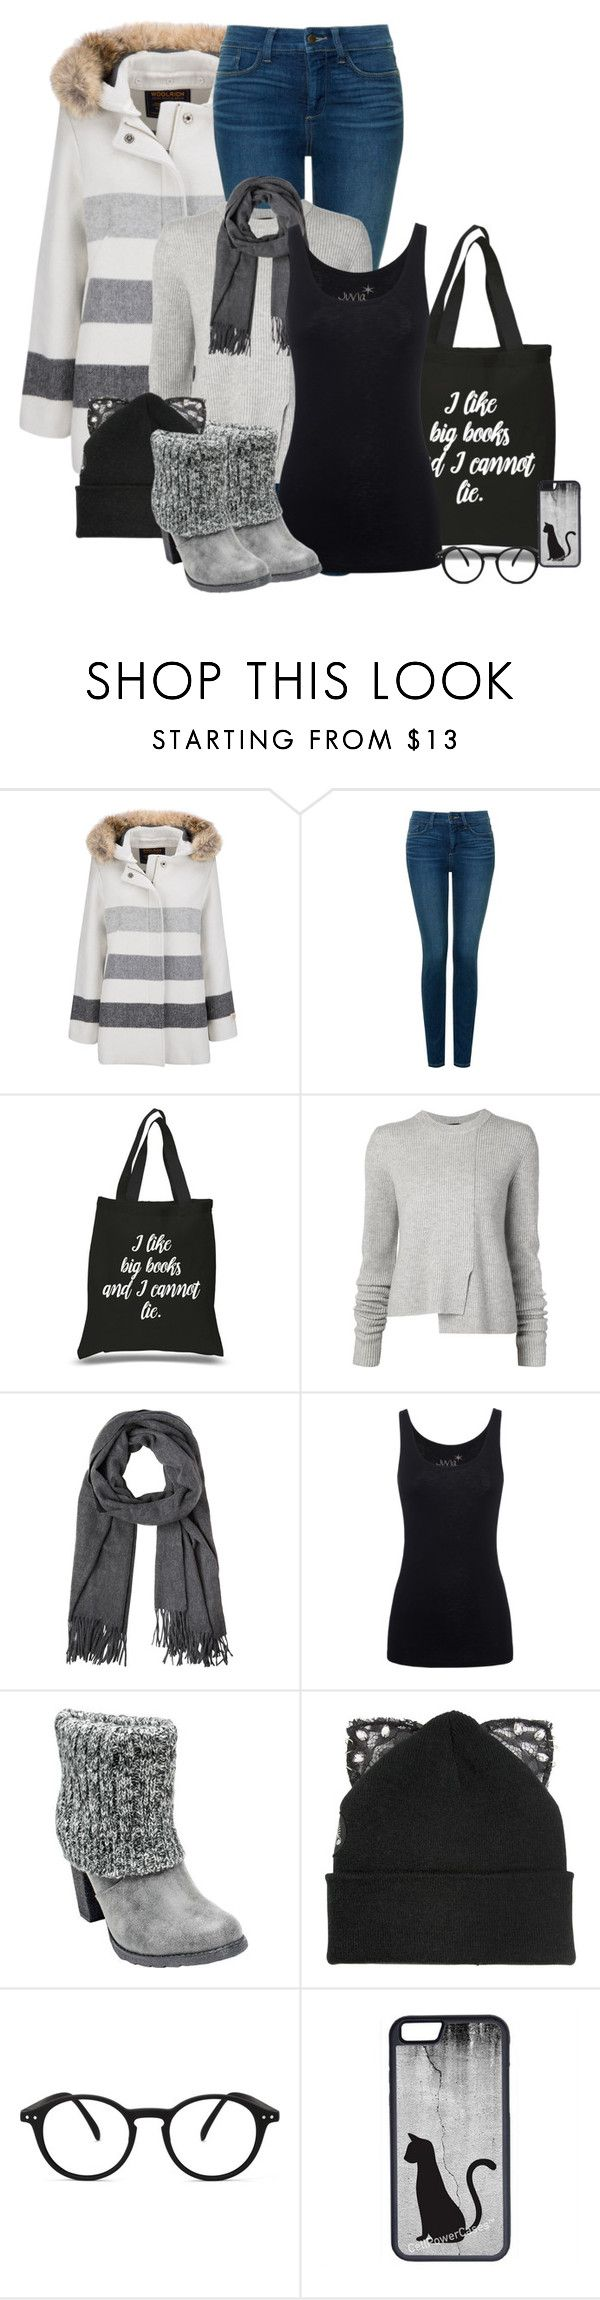 """Black Friday Shopping (OUTFIT ONLY!)"" by melissa-chung-pnklmnade ❤ liked on Polyvore featuring Woolrich, NYDJ, Proenza Schouler, Juvia, Muk Luks, Silver Spoon Attire, See Concept and CellPowerCases"